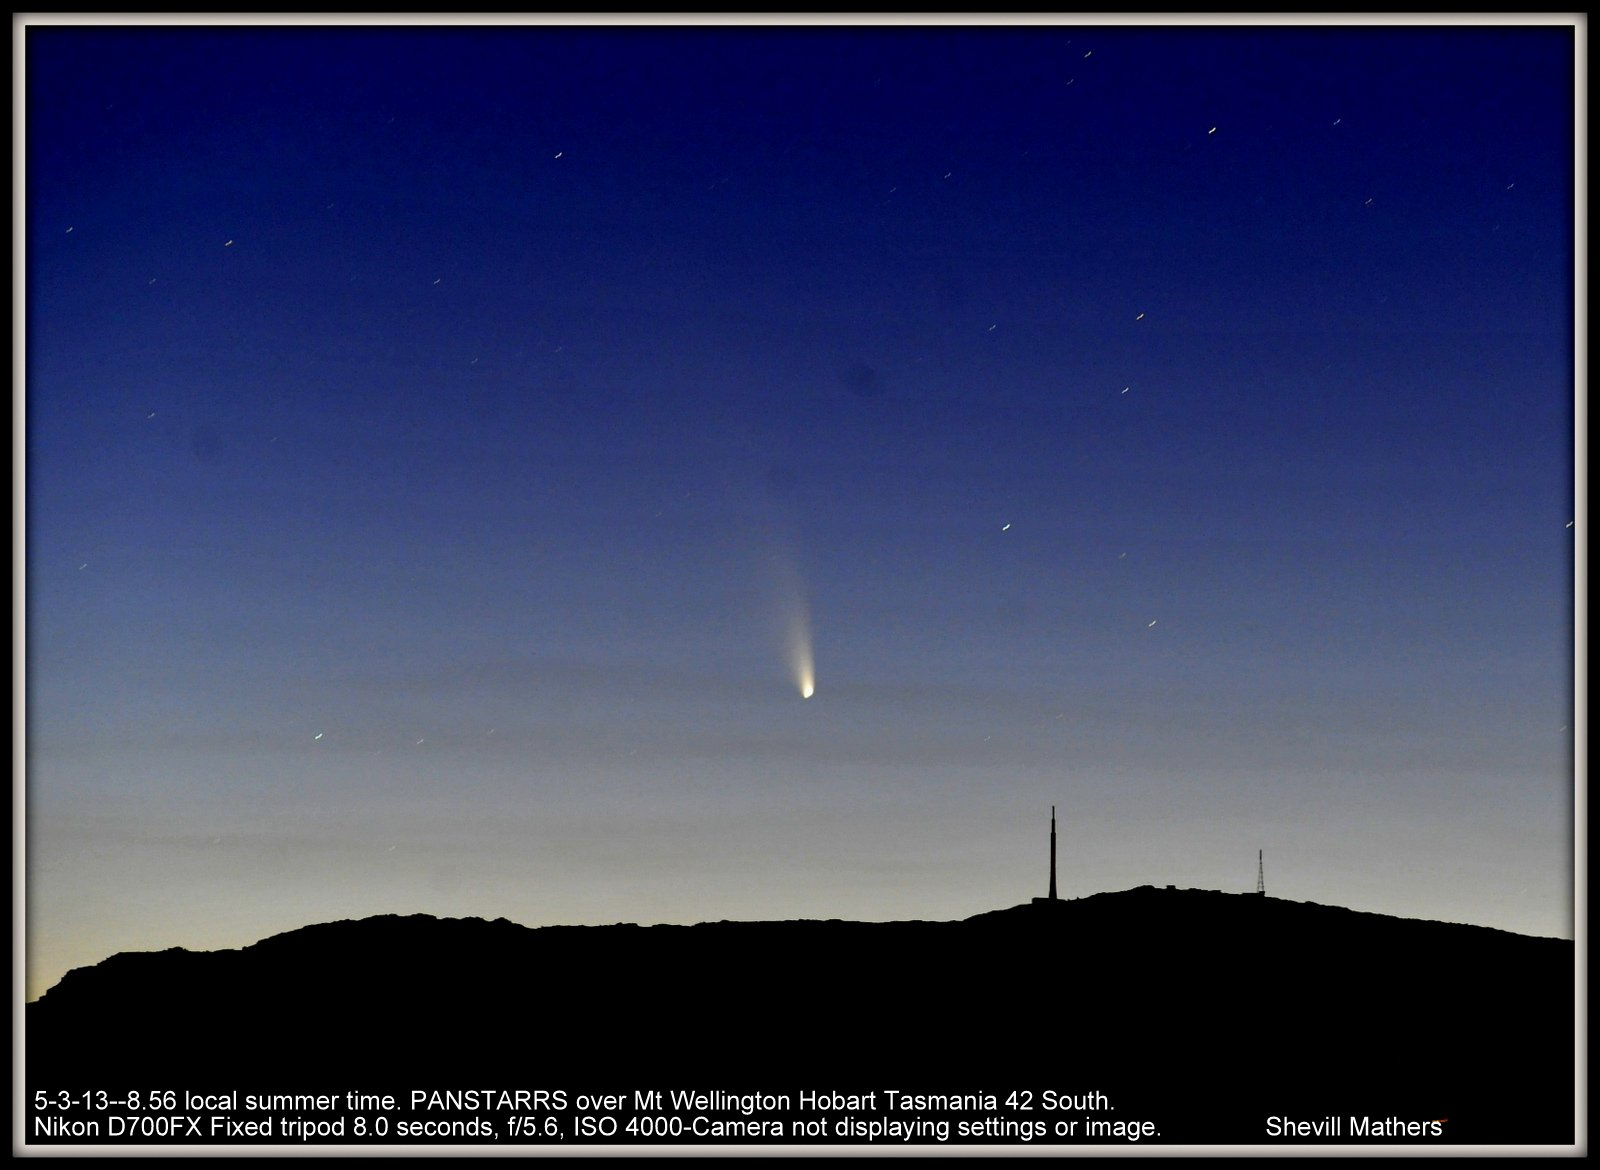 Comet PANSTARRS Courtesy of Shevill Mathers March 5, 2013